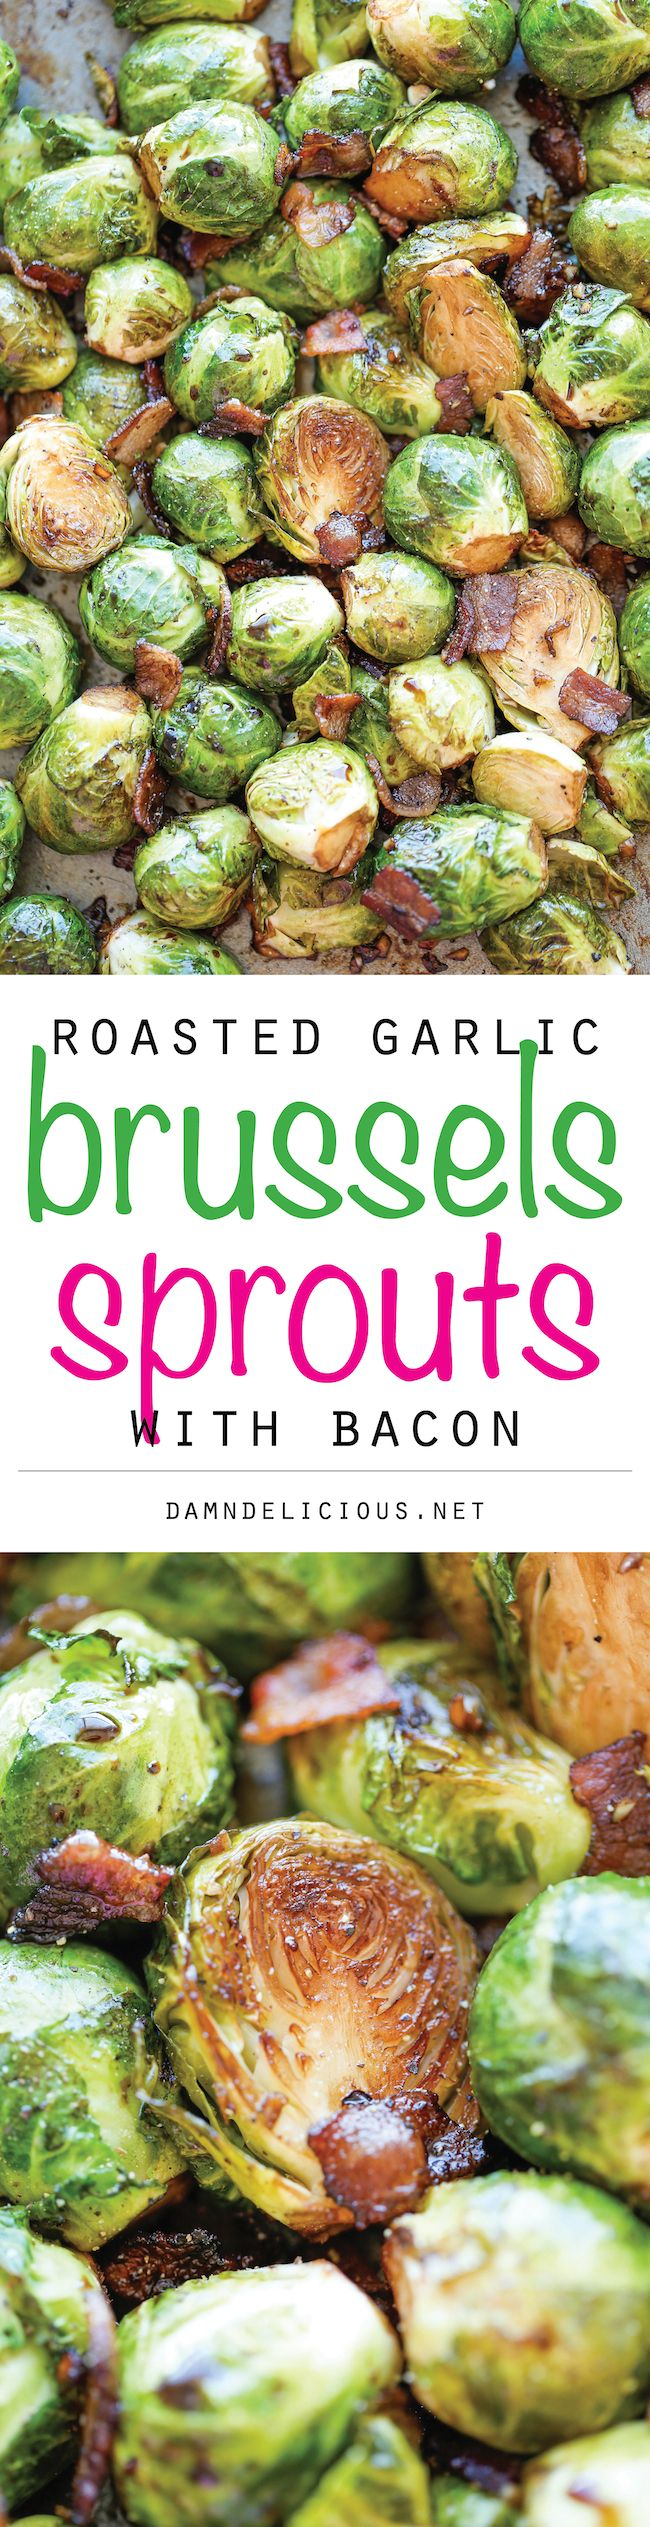 Roasted Garlic Brussels Sprouts - The best garlic brussels sprouts ever, made with garlic and crisp bacon goodness! Minus the bacon